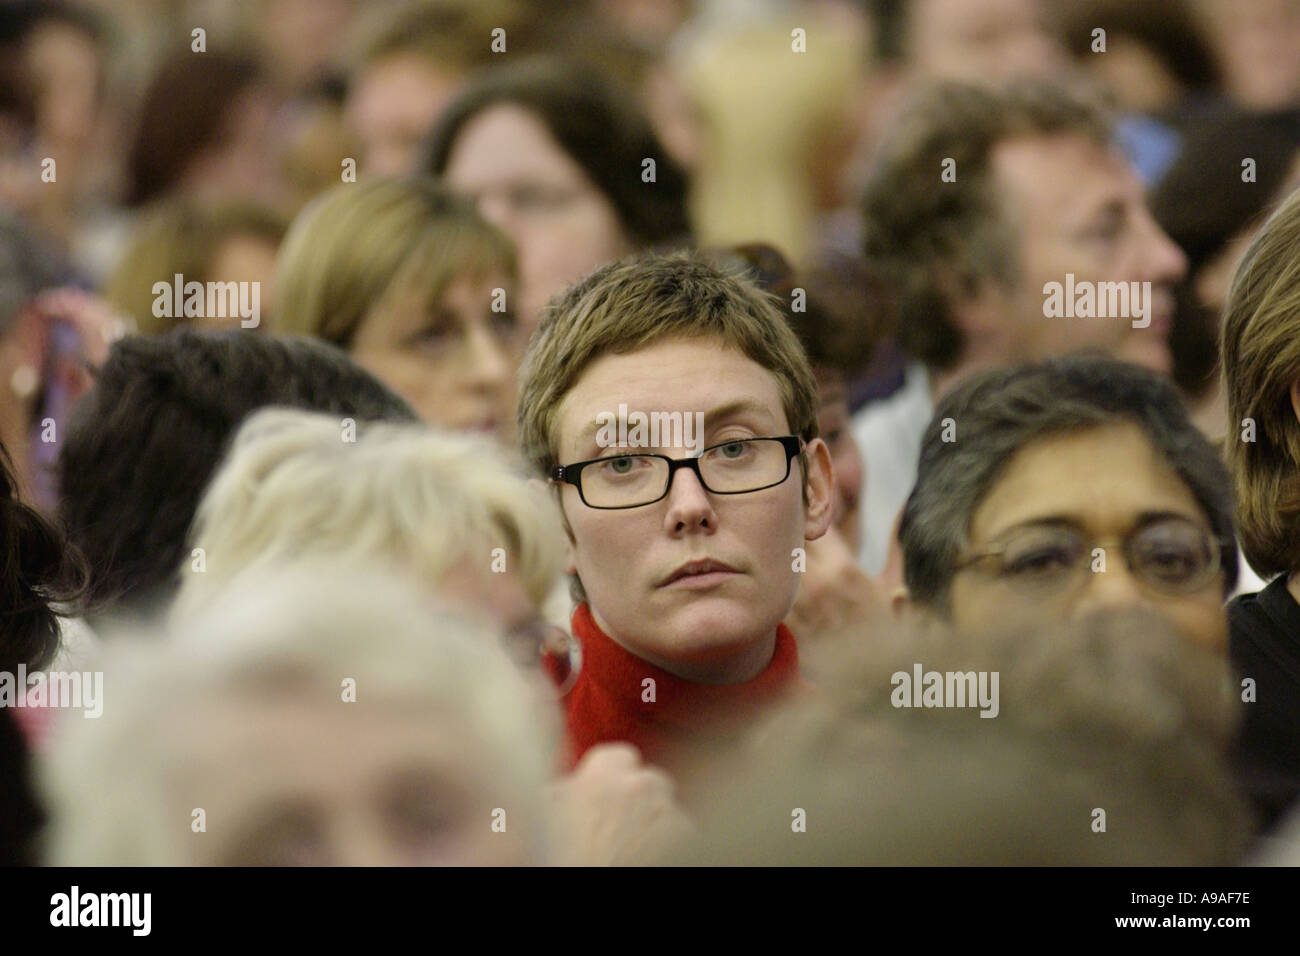 Audience during an event at Hay Festival 2002 Hay on Wye Powys Wales UK - Stock Image